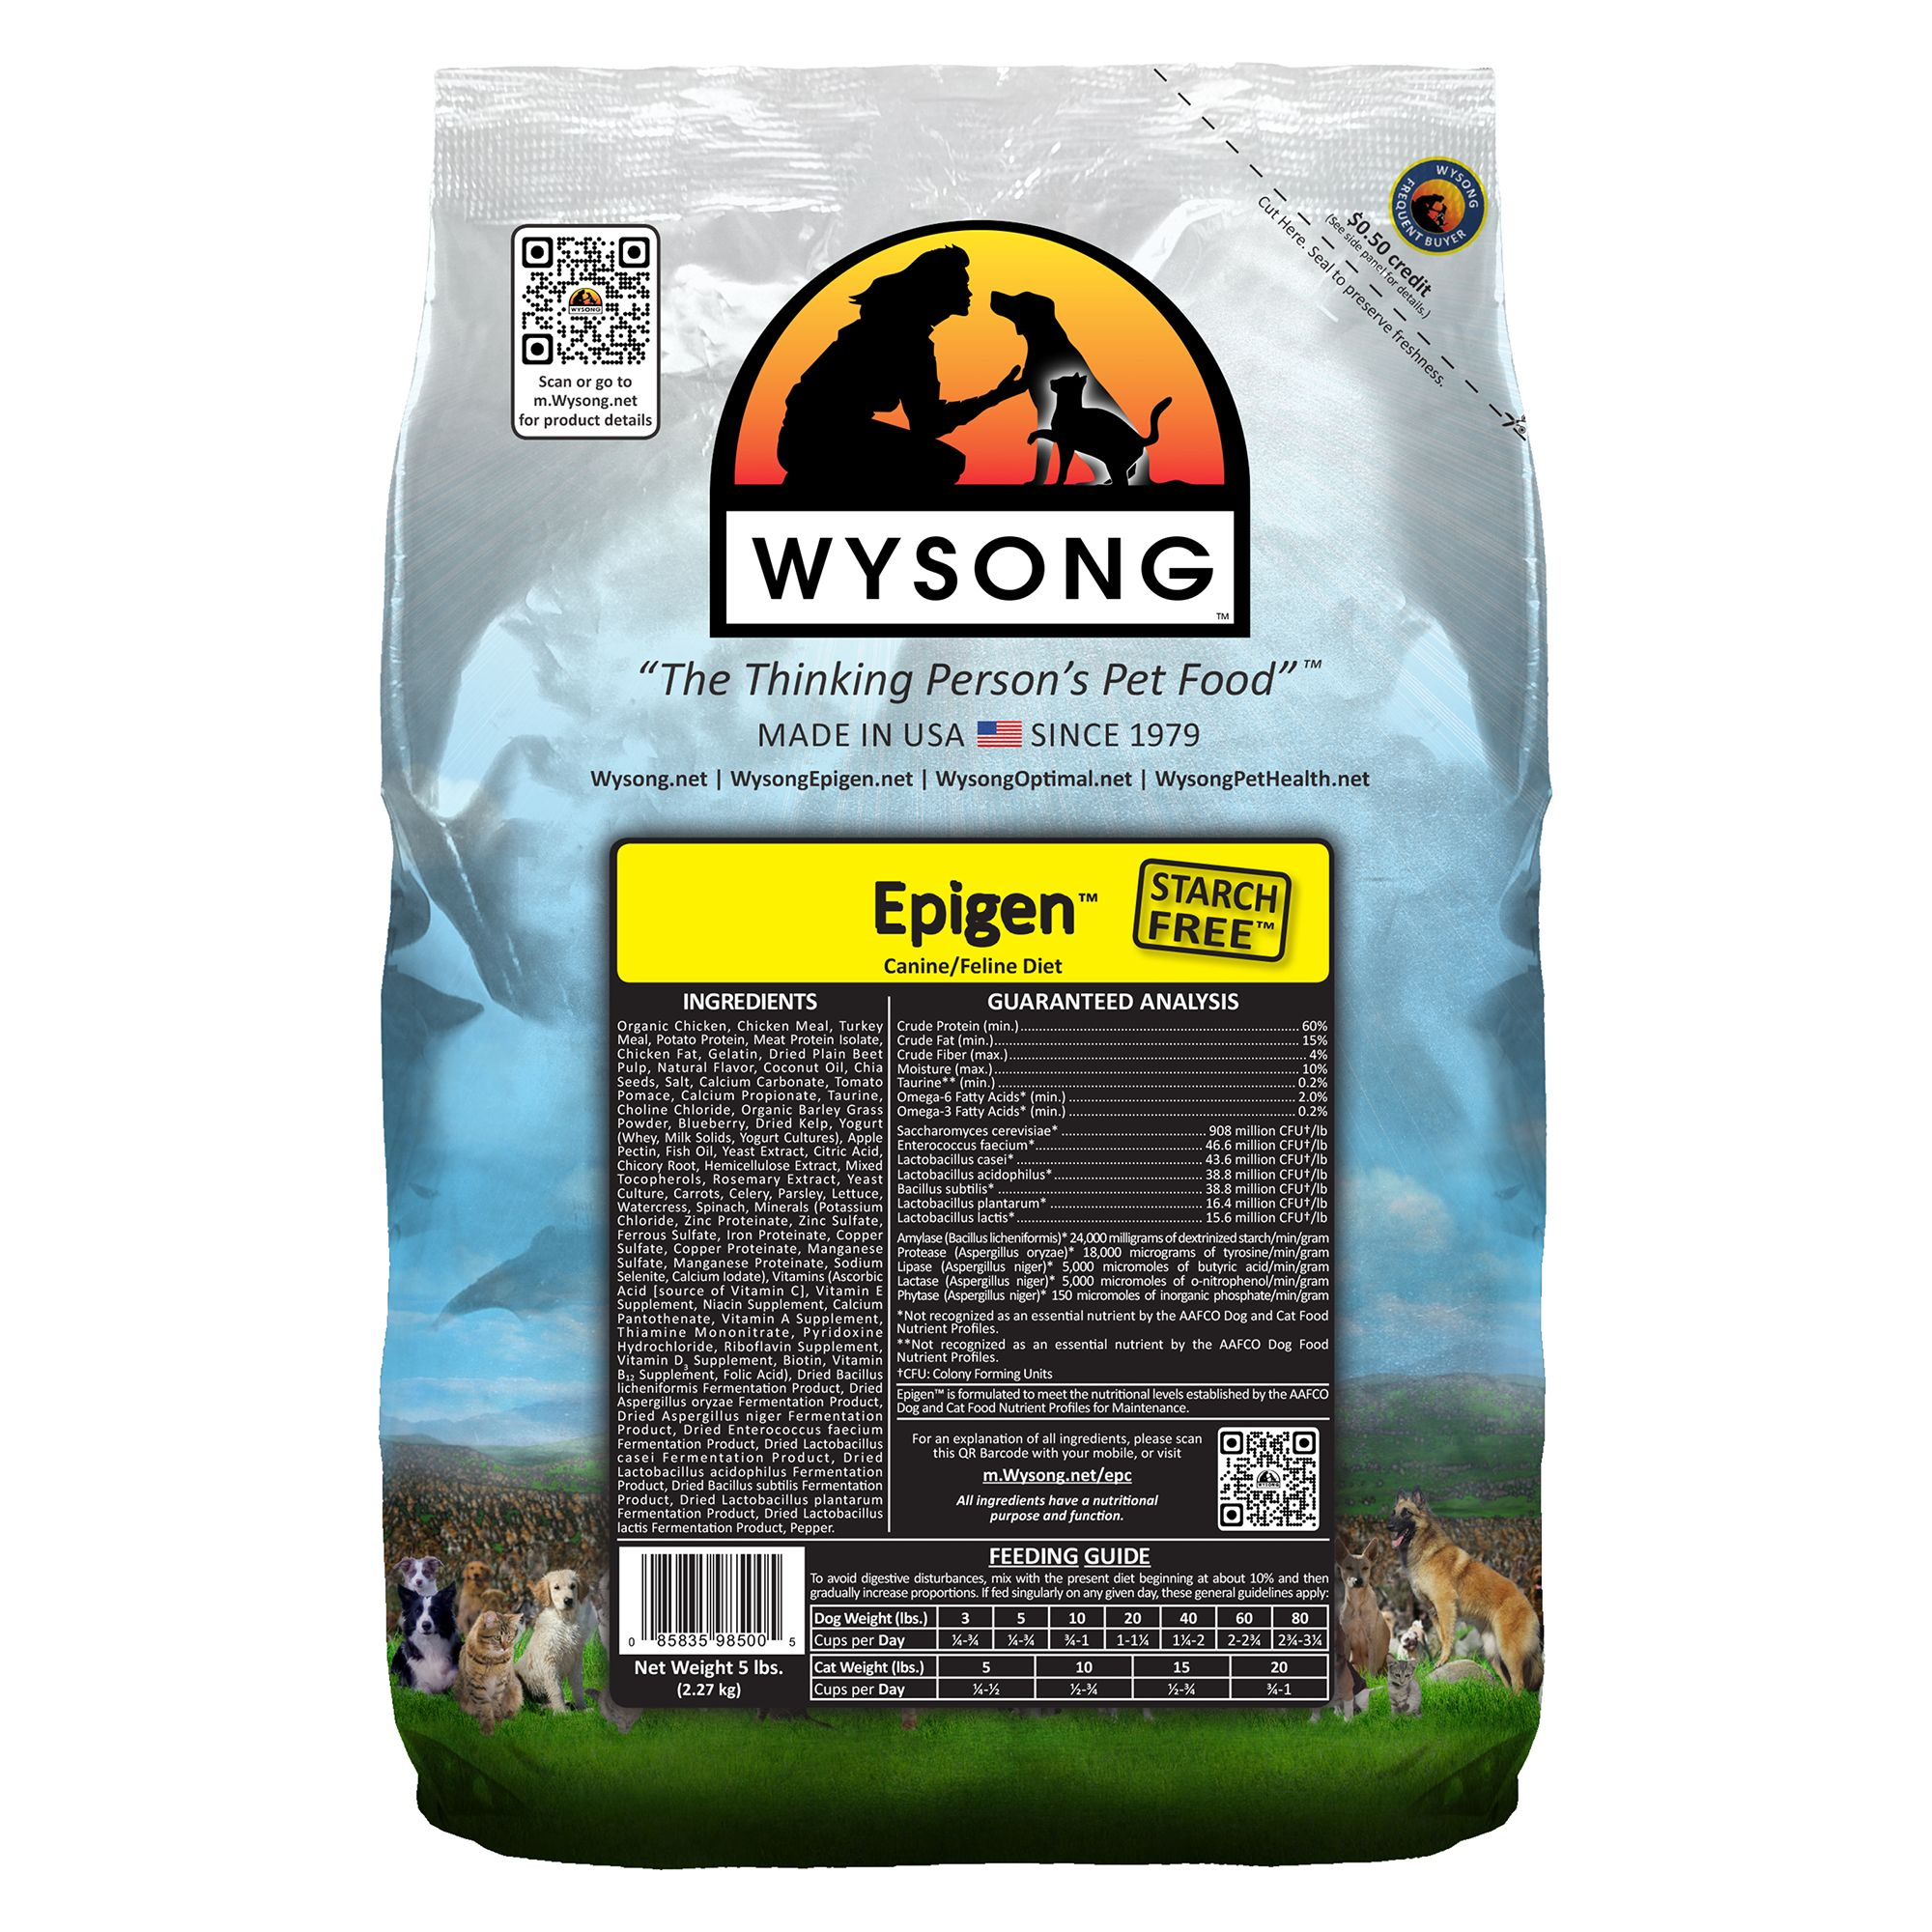 Wysong Epigen Dog And Cat Food Chicken Size 5 Lb